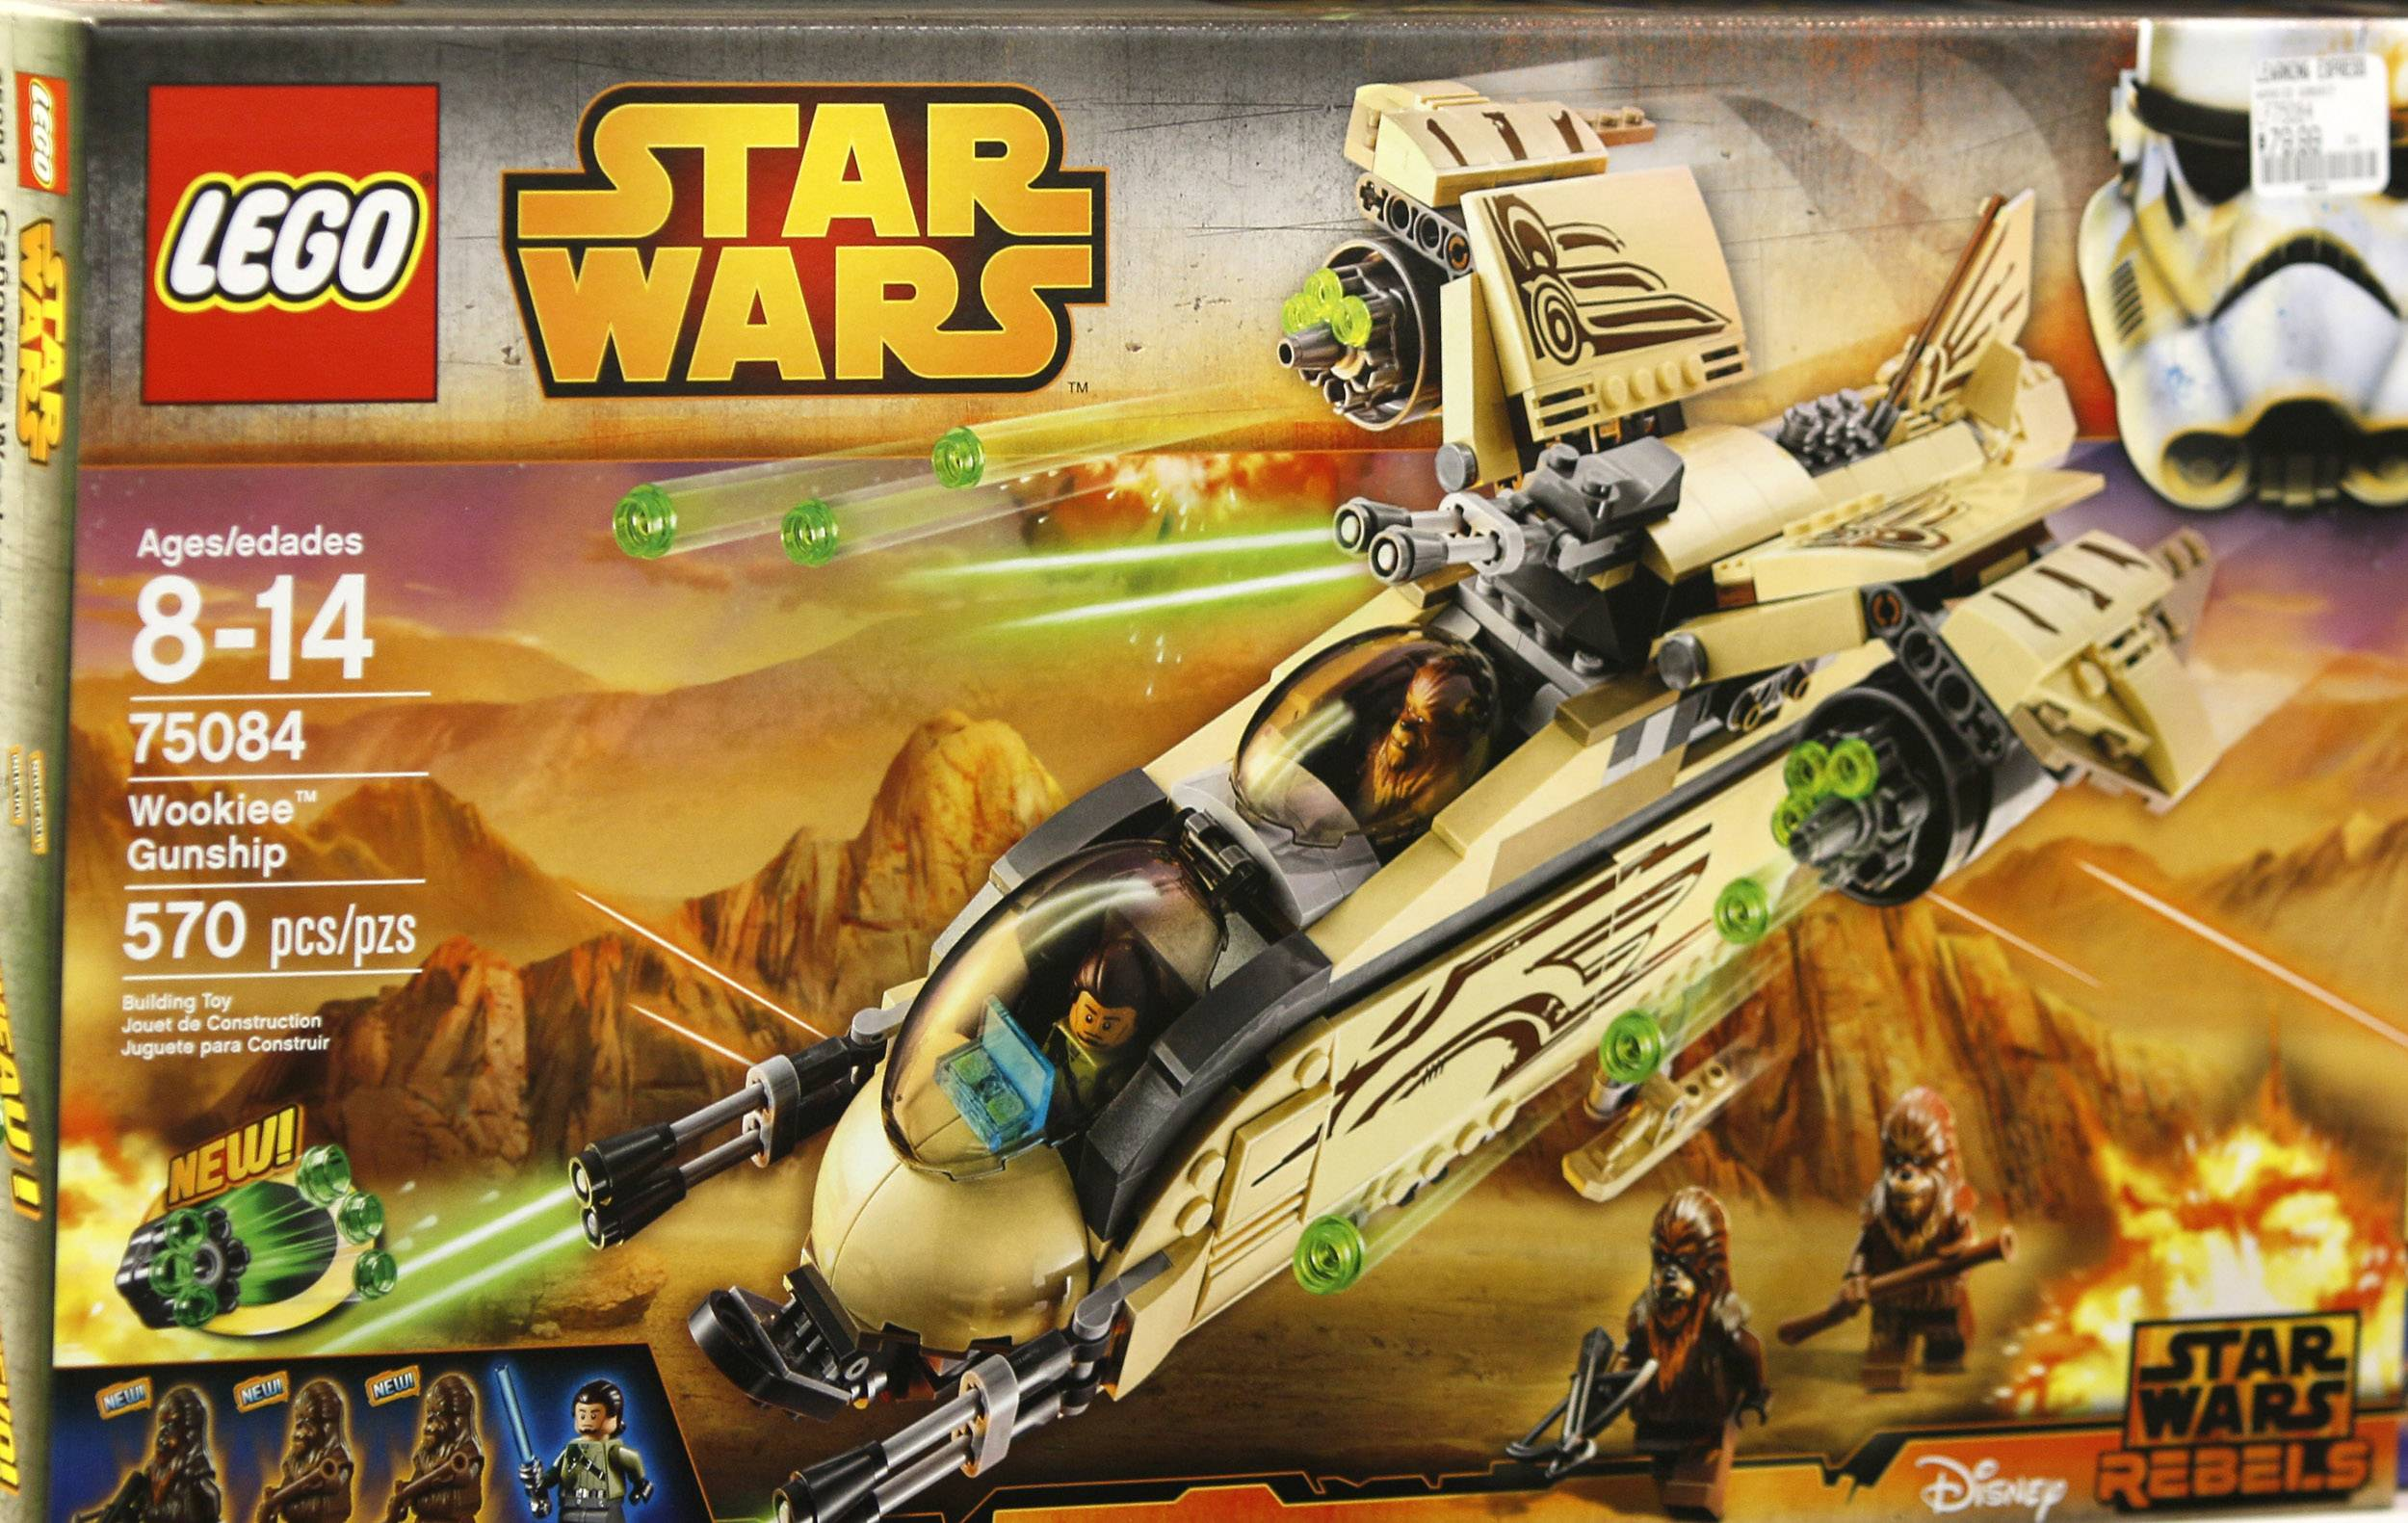 Star Wars Lego toys are selling at the Learning Express Store in Naperville.